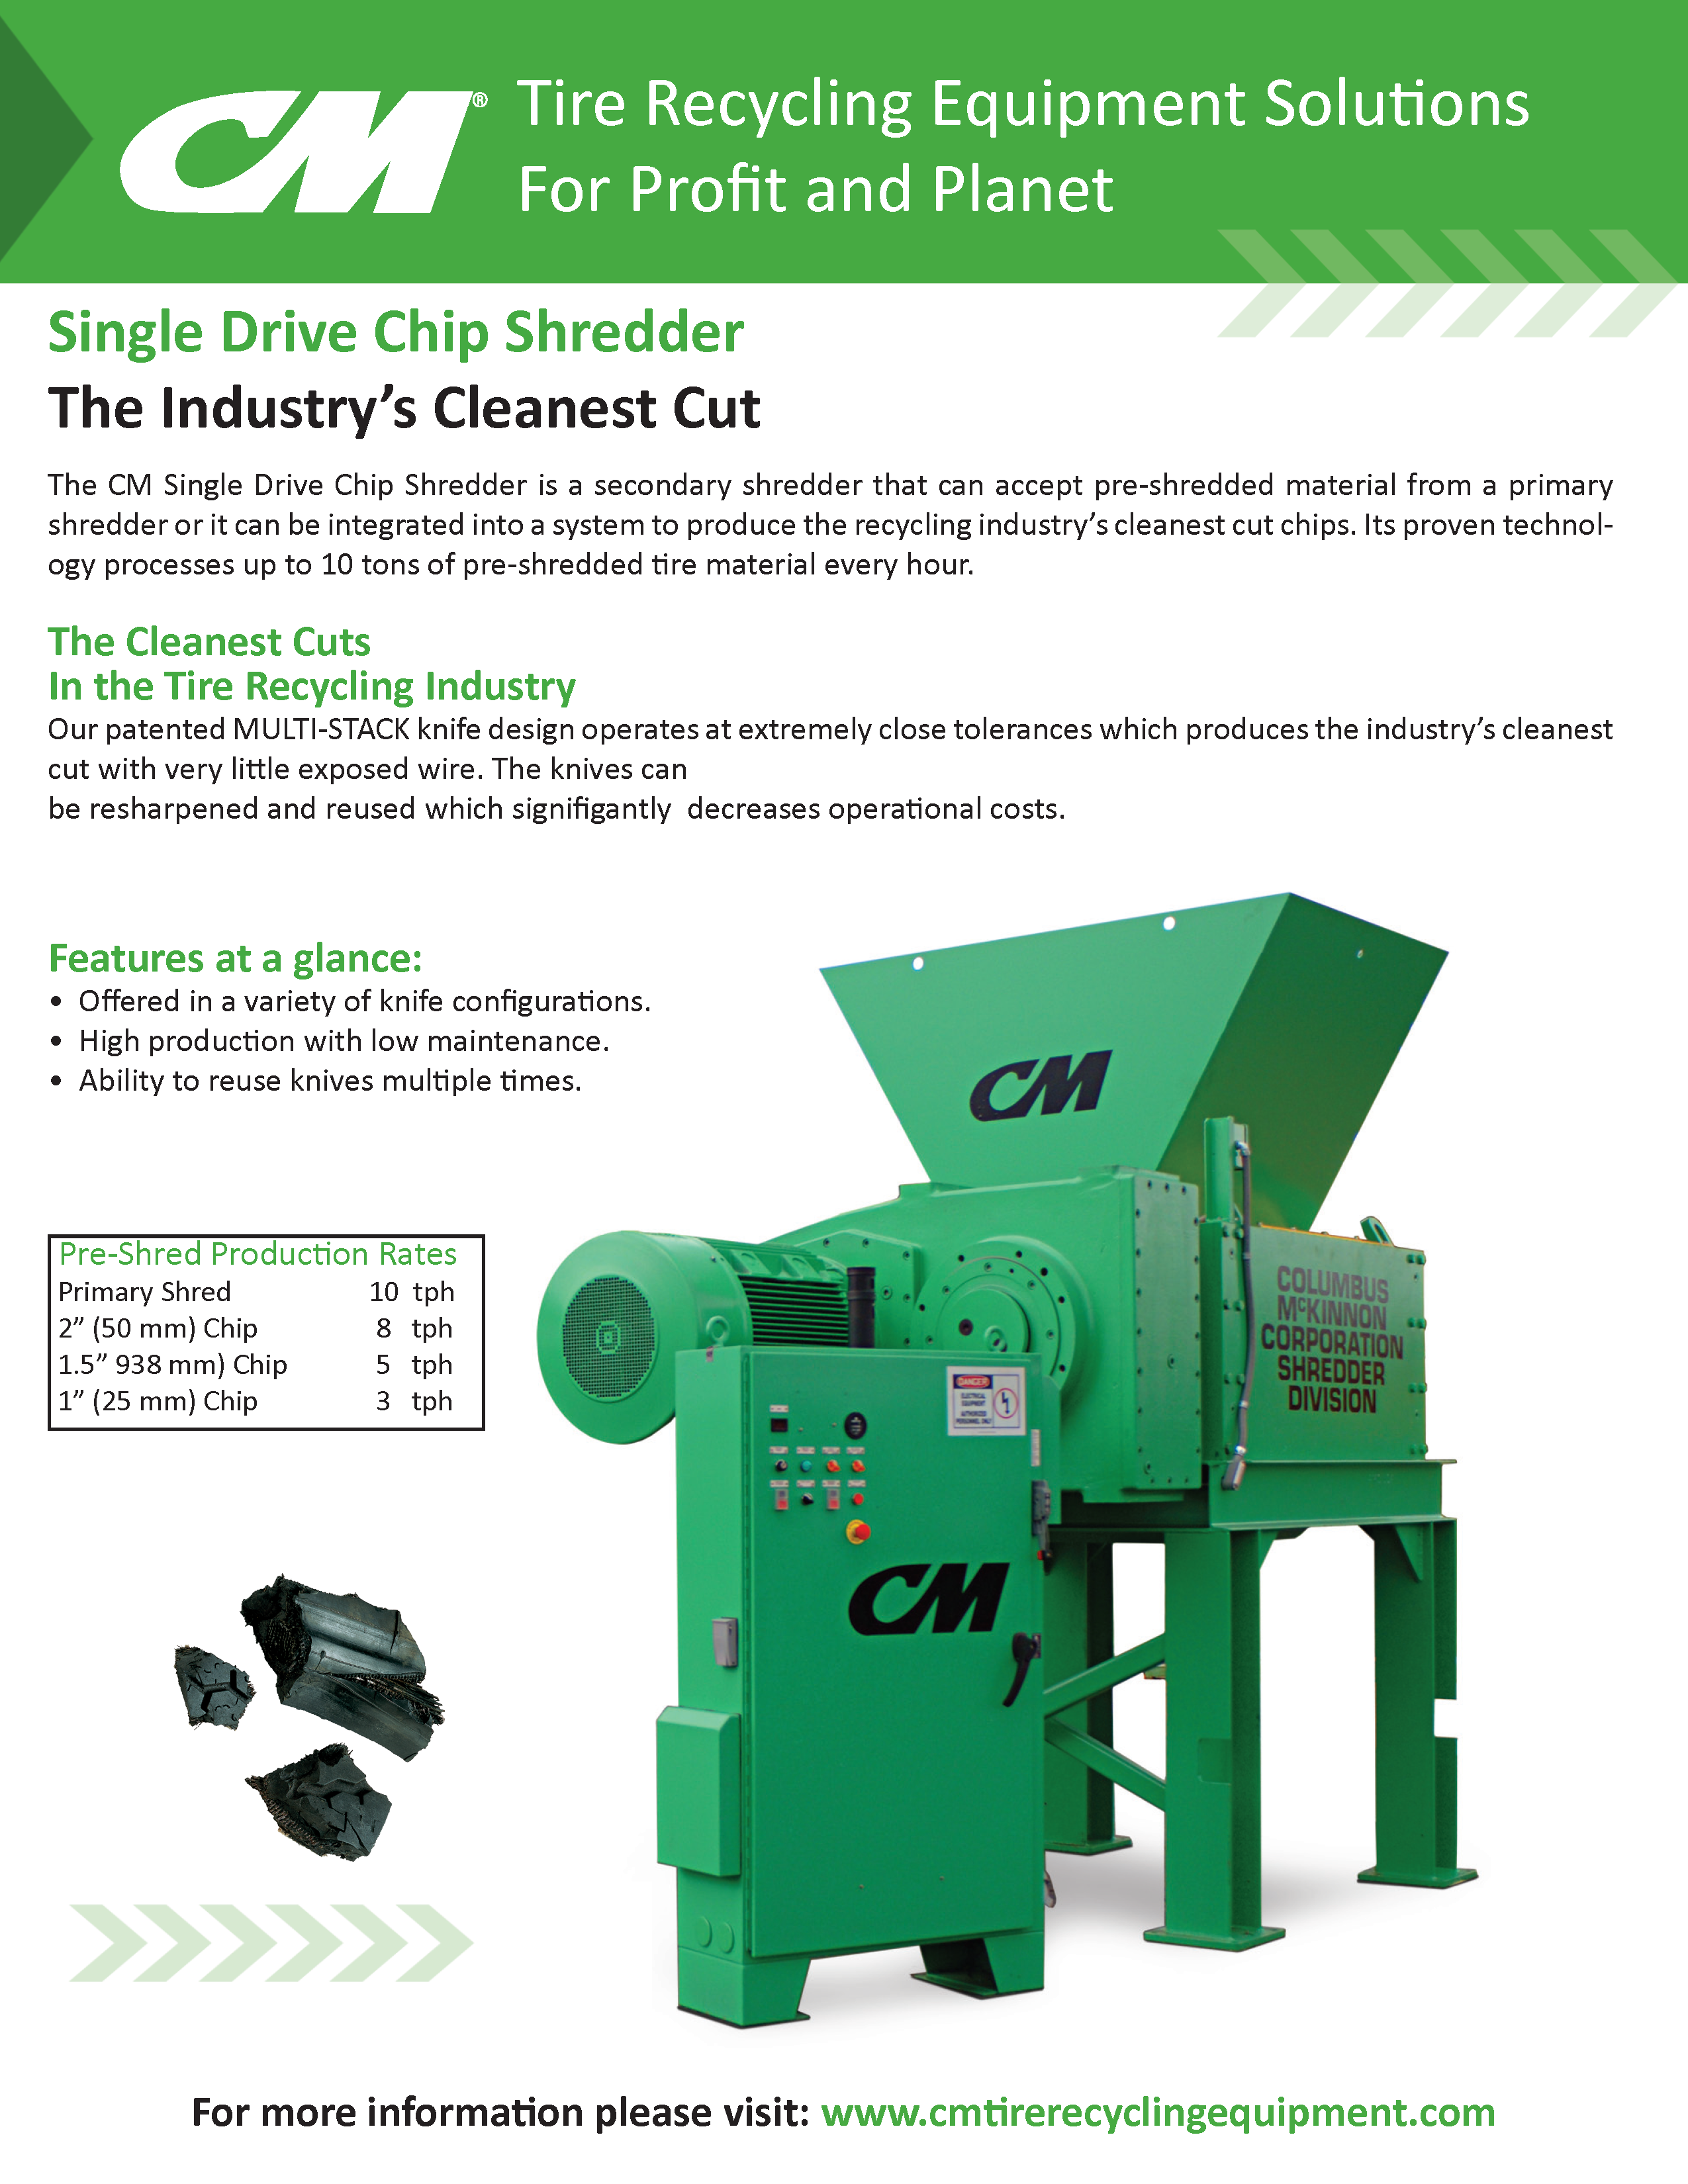 Learn more by viewing the CM Single Drive Chip Shredder Brochure